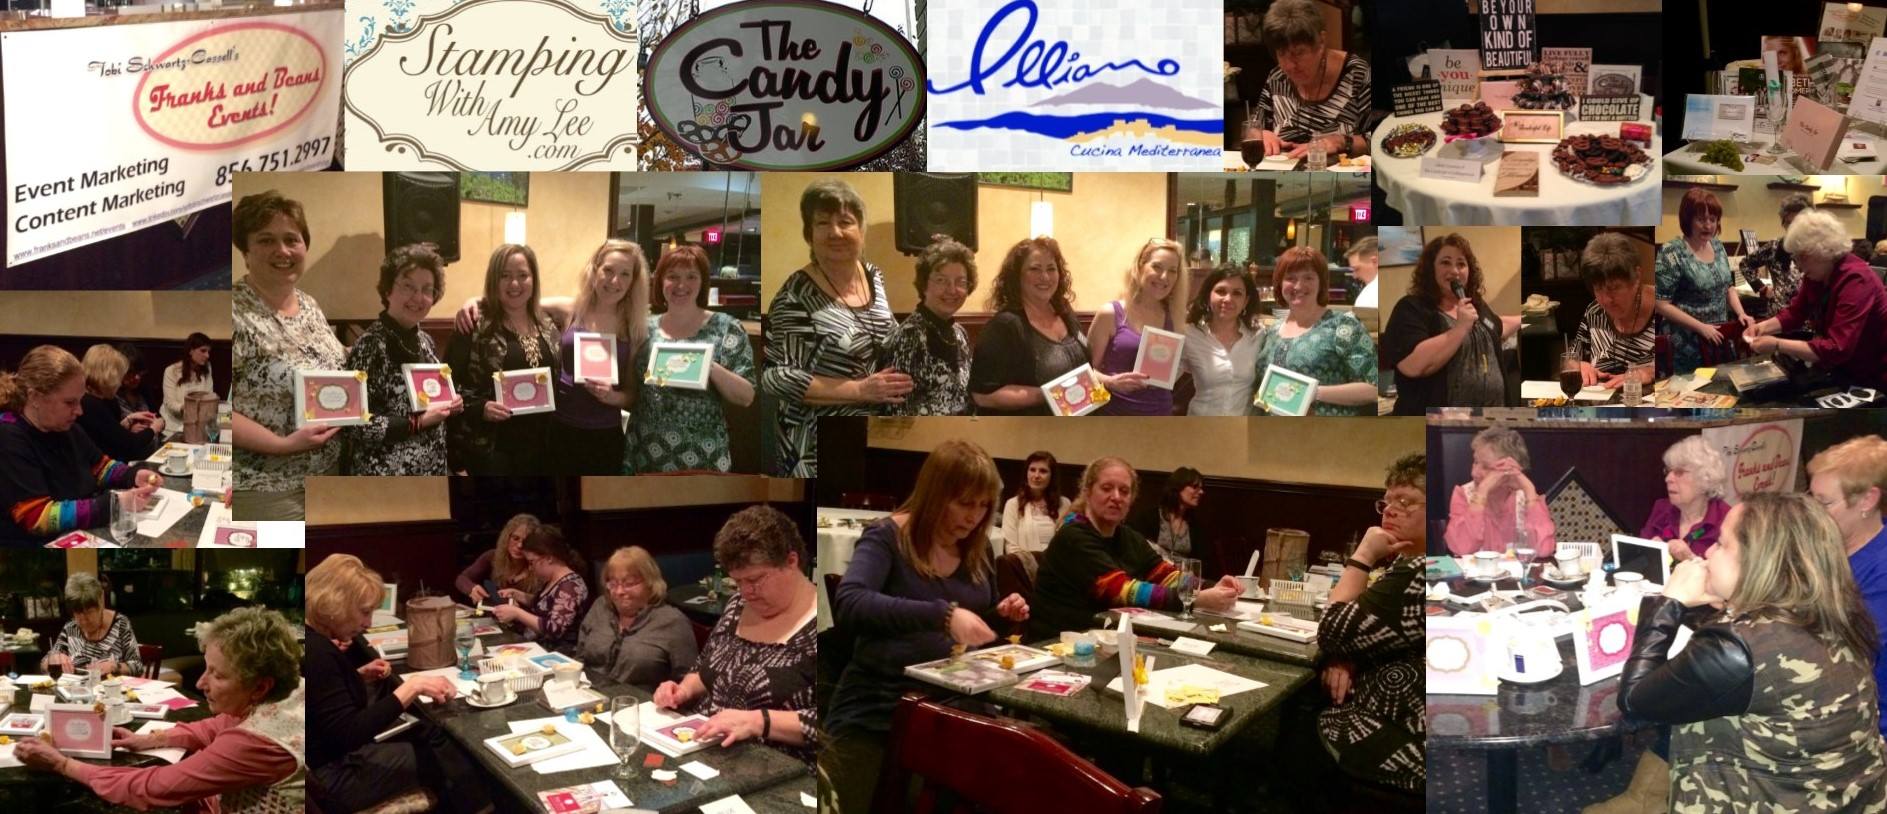 I'm not much of a crafter, but our instructor, Amy Ettelson, made it easy for me and my guests. And Illiano's–as usual–served up some really awesome food!